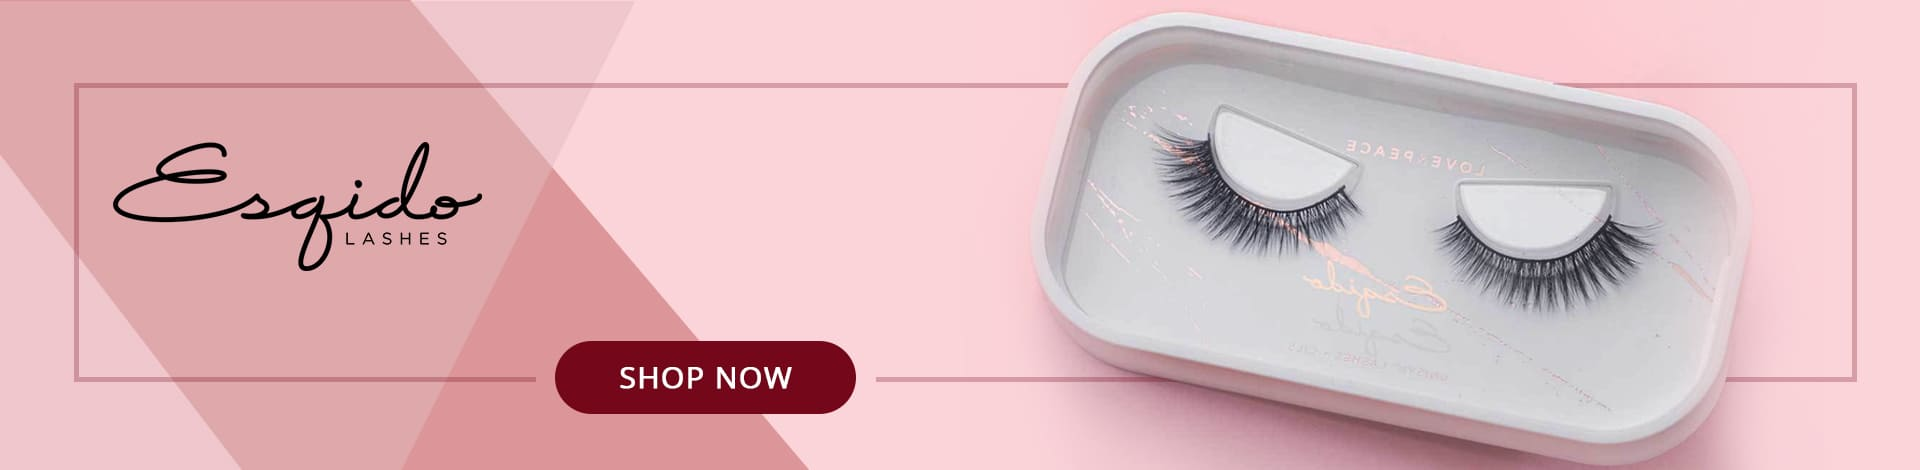 esqido false lashes Review banner